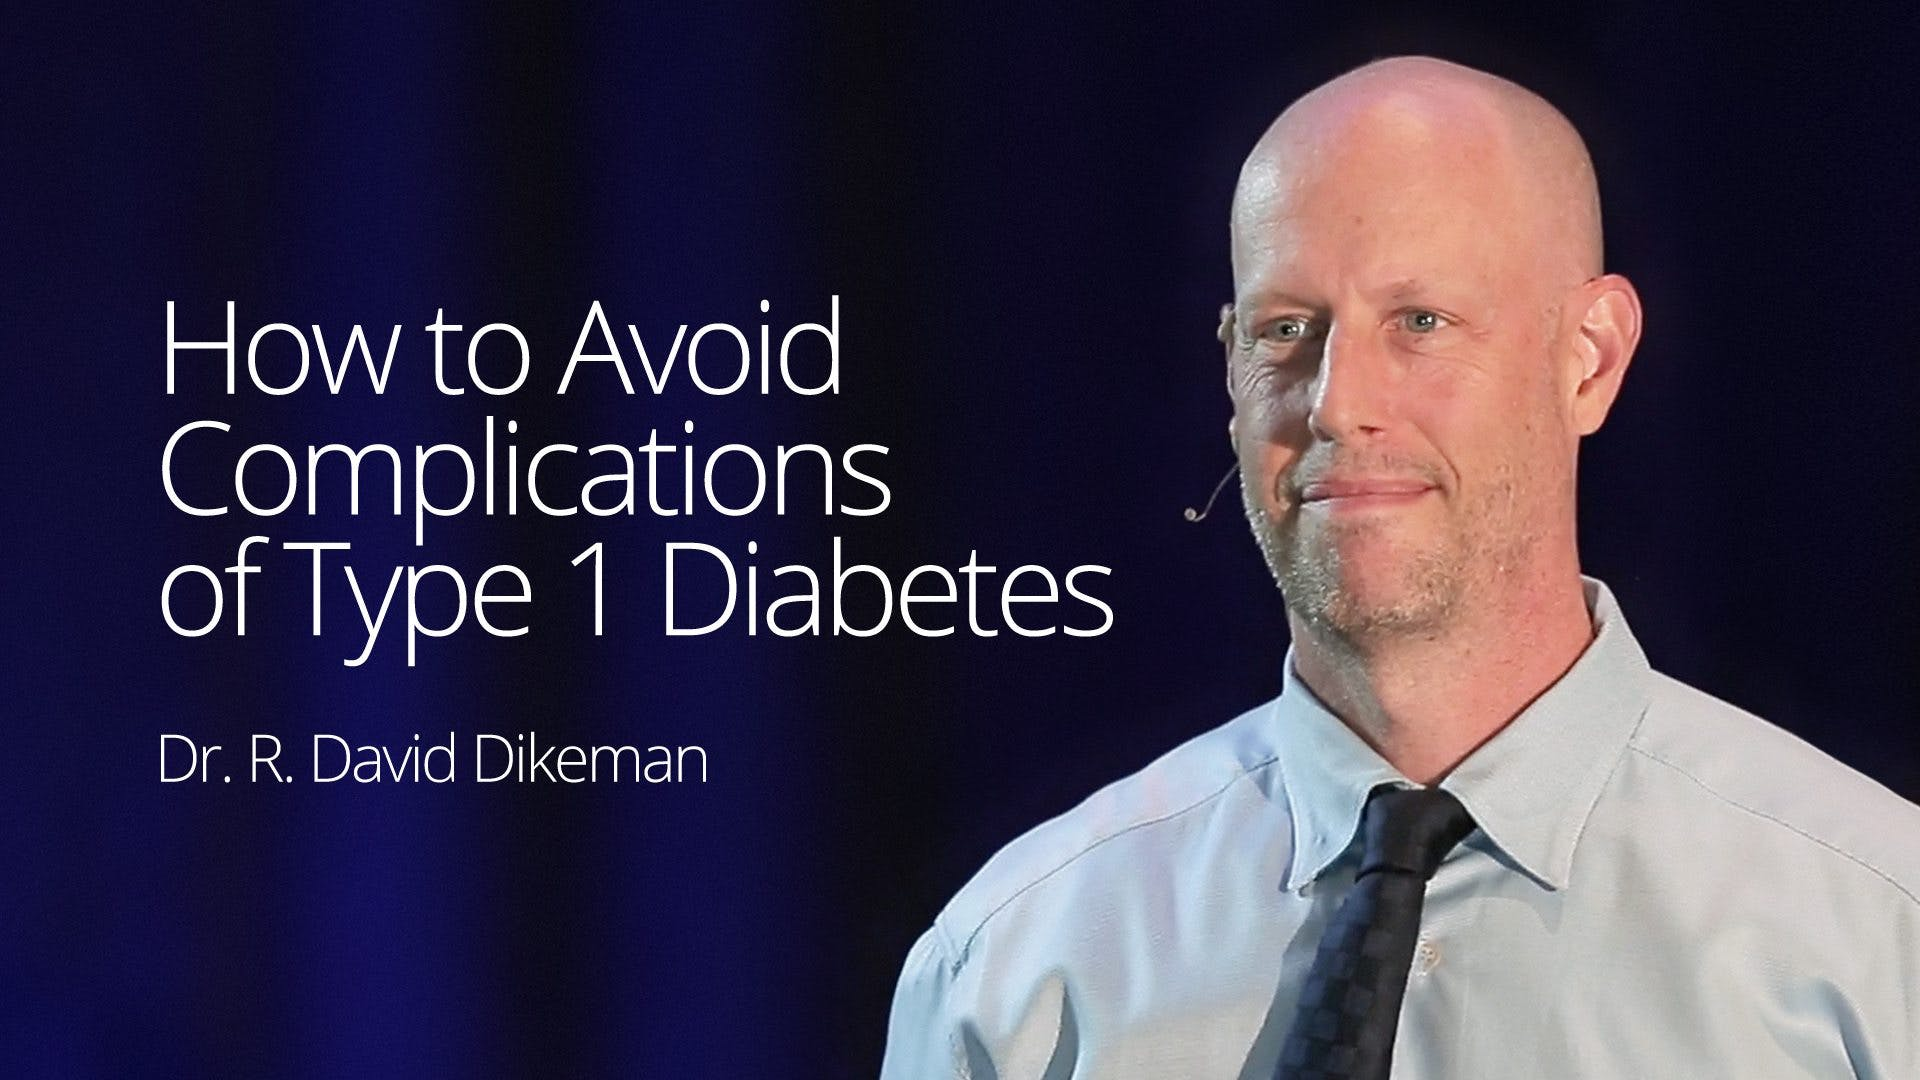 How to avoid complications of type 1 diabetes